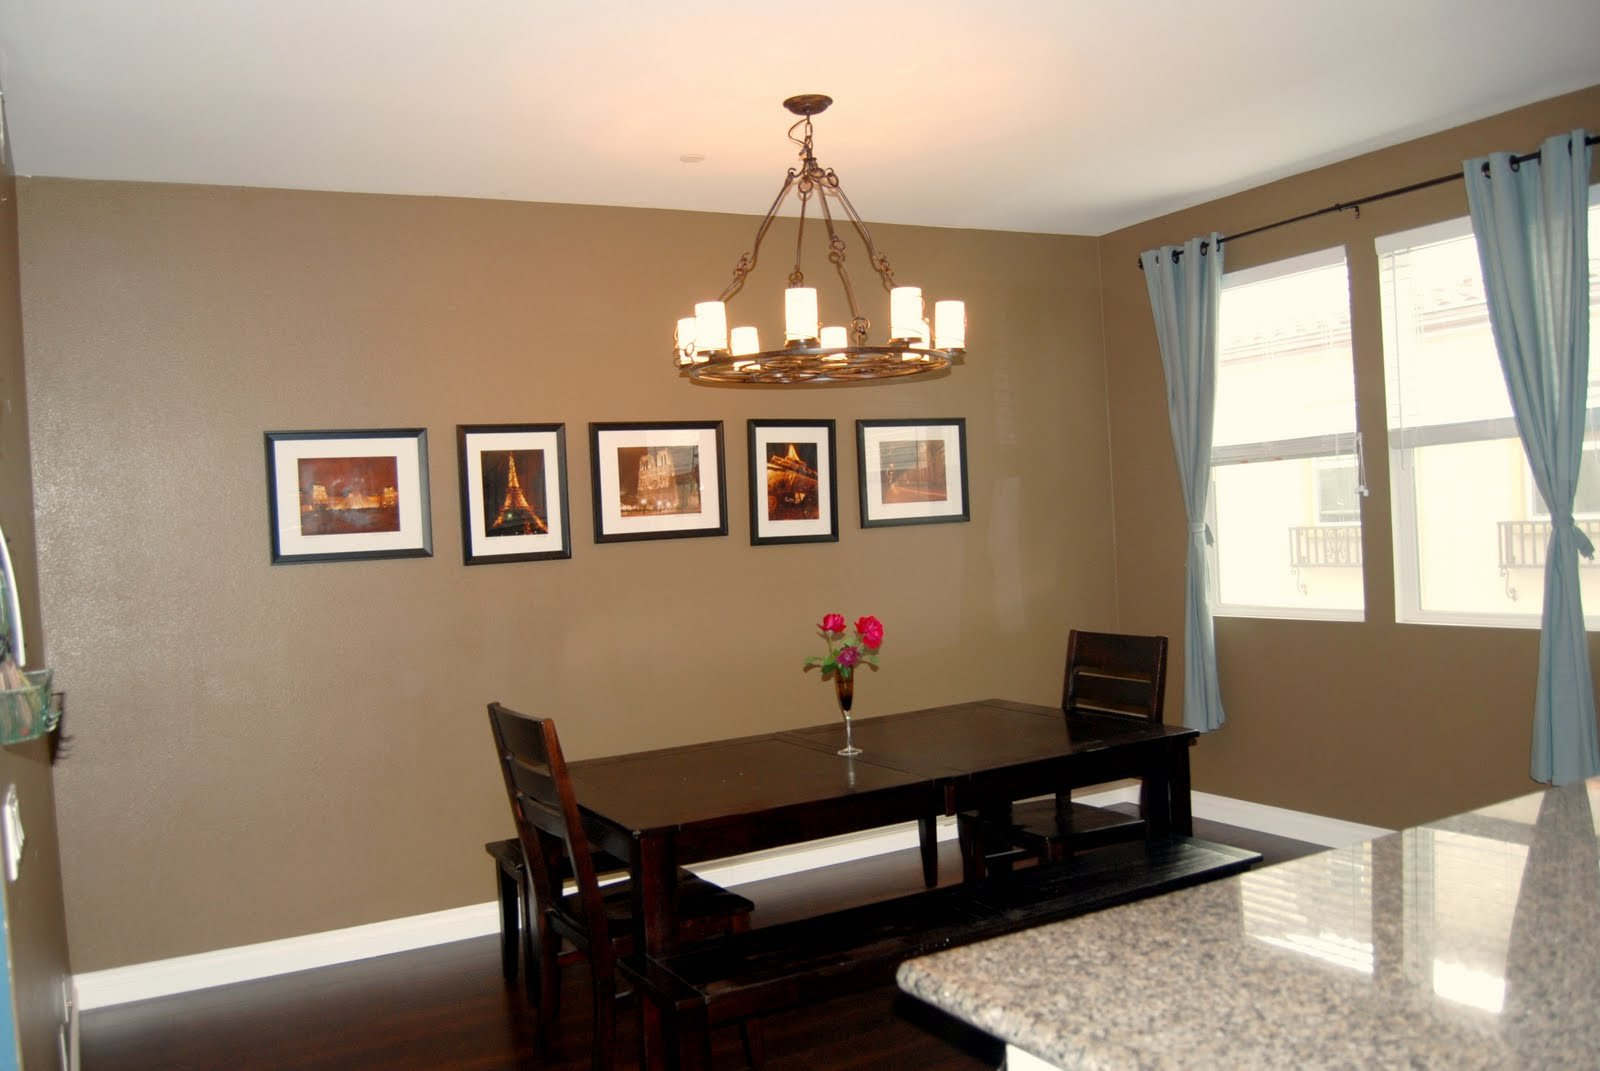 Dining Room Wall Decor Pictures New Various Inspiring Ideas Of the Stylish yet Simple Dining Room Wall Décor for A Stunning Dining